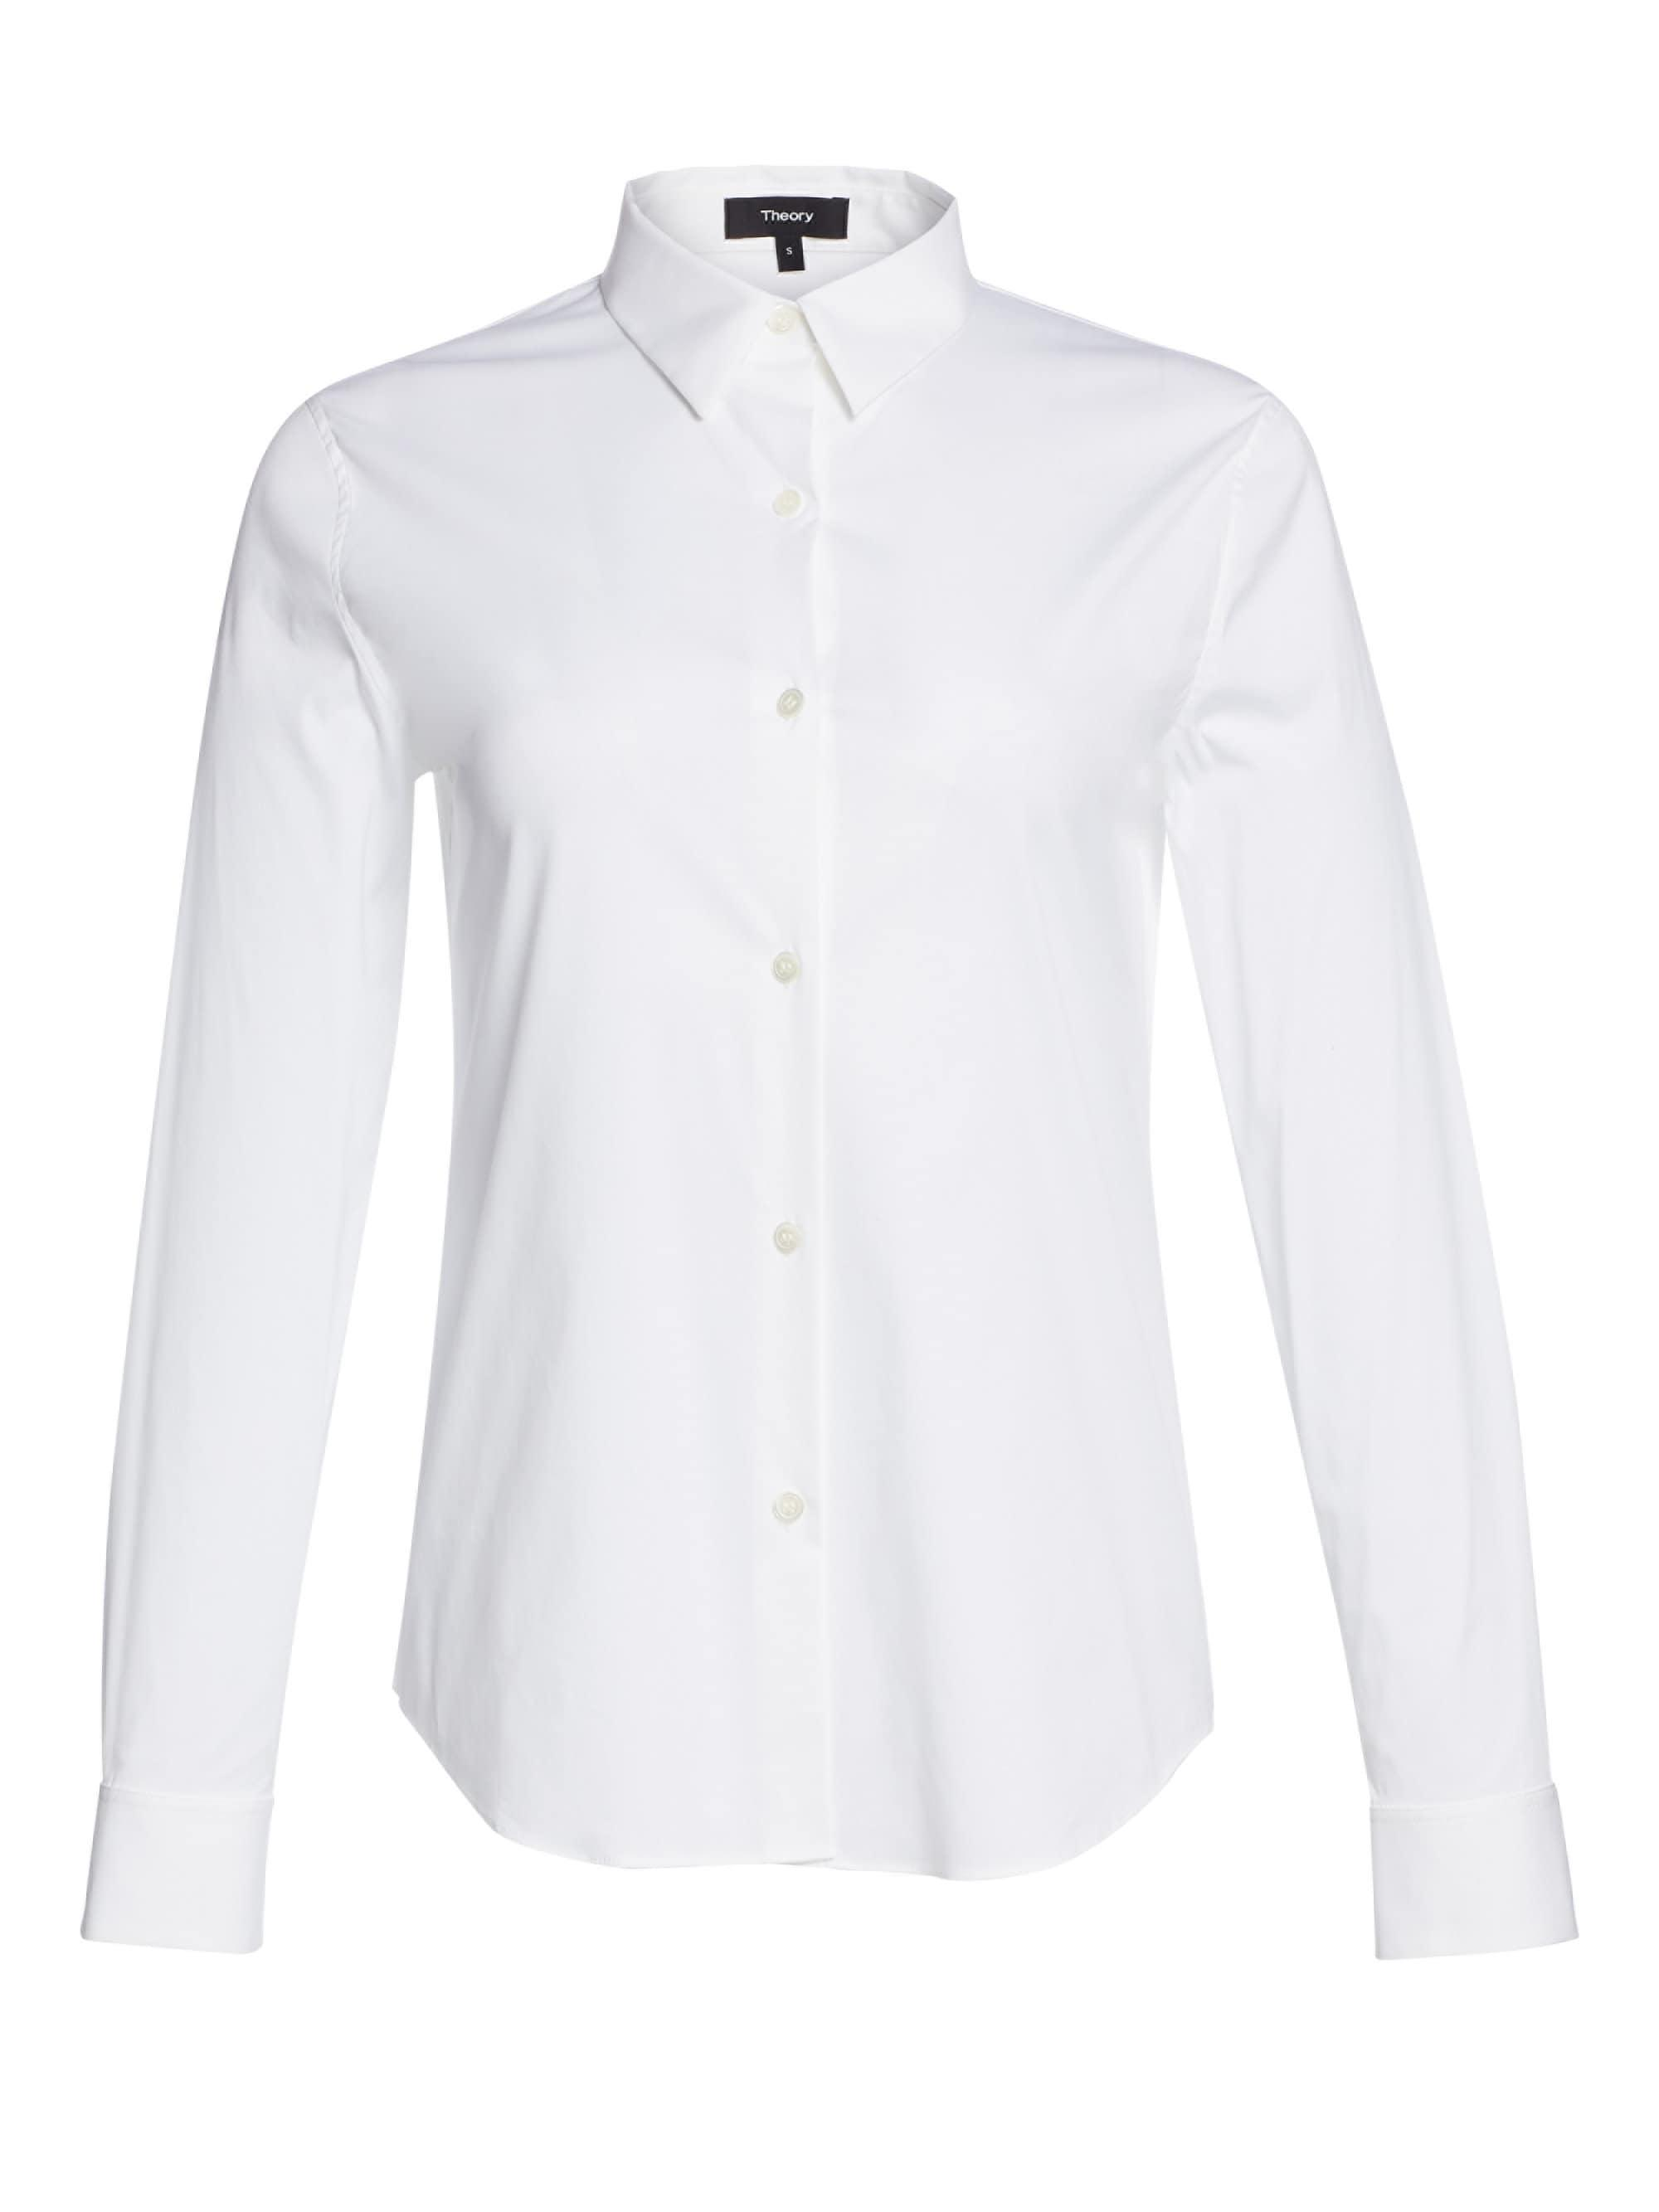 888efb10ec7d74 Theory Tenia Luxe Cotton Shirt in White - Lyst